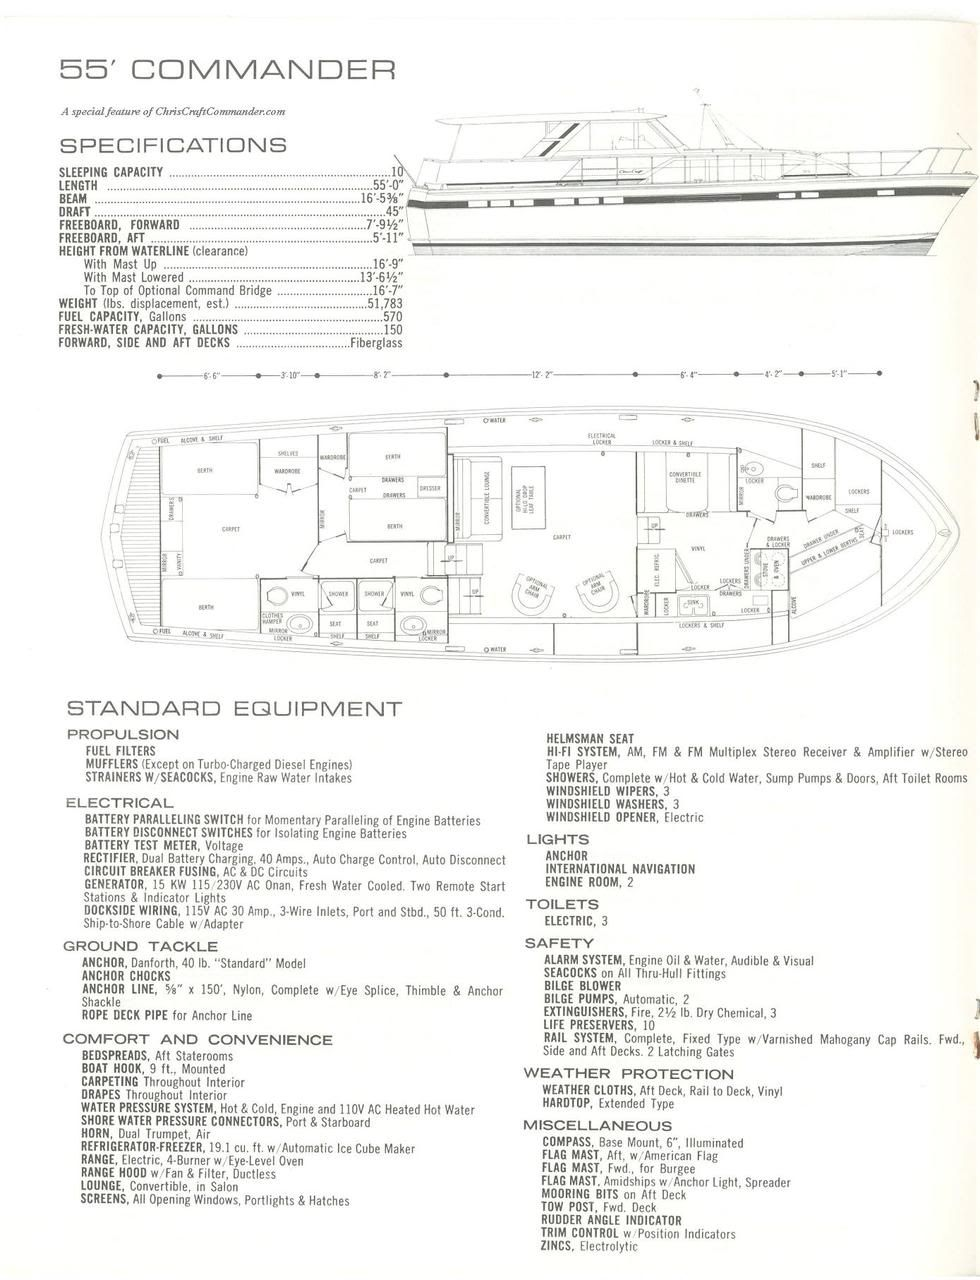 9c3ec0d27184c4e56da974320de497ad 1972 55' chris craft commander specs and floorplan chris craft  at eliteediting.co